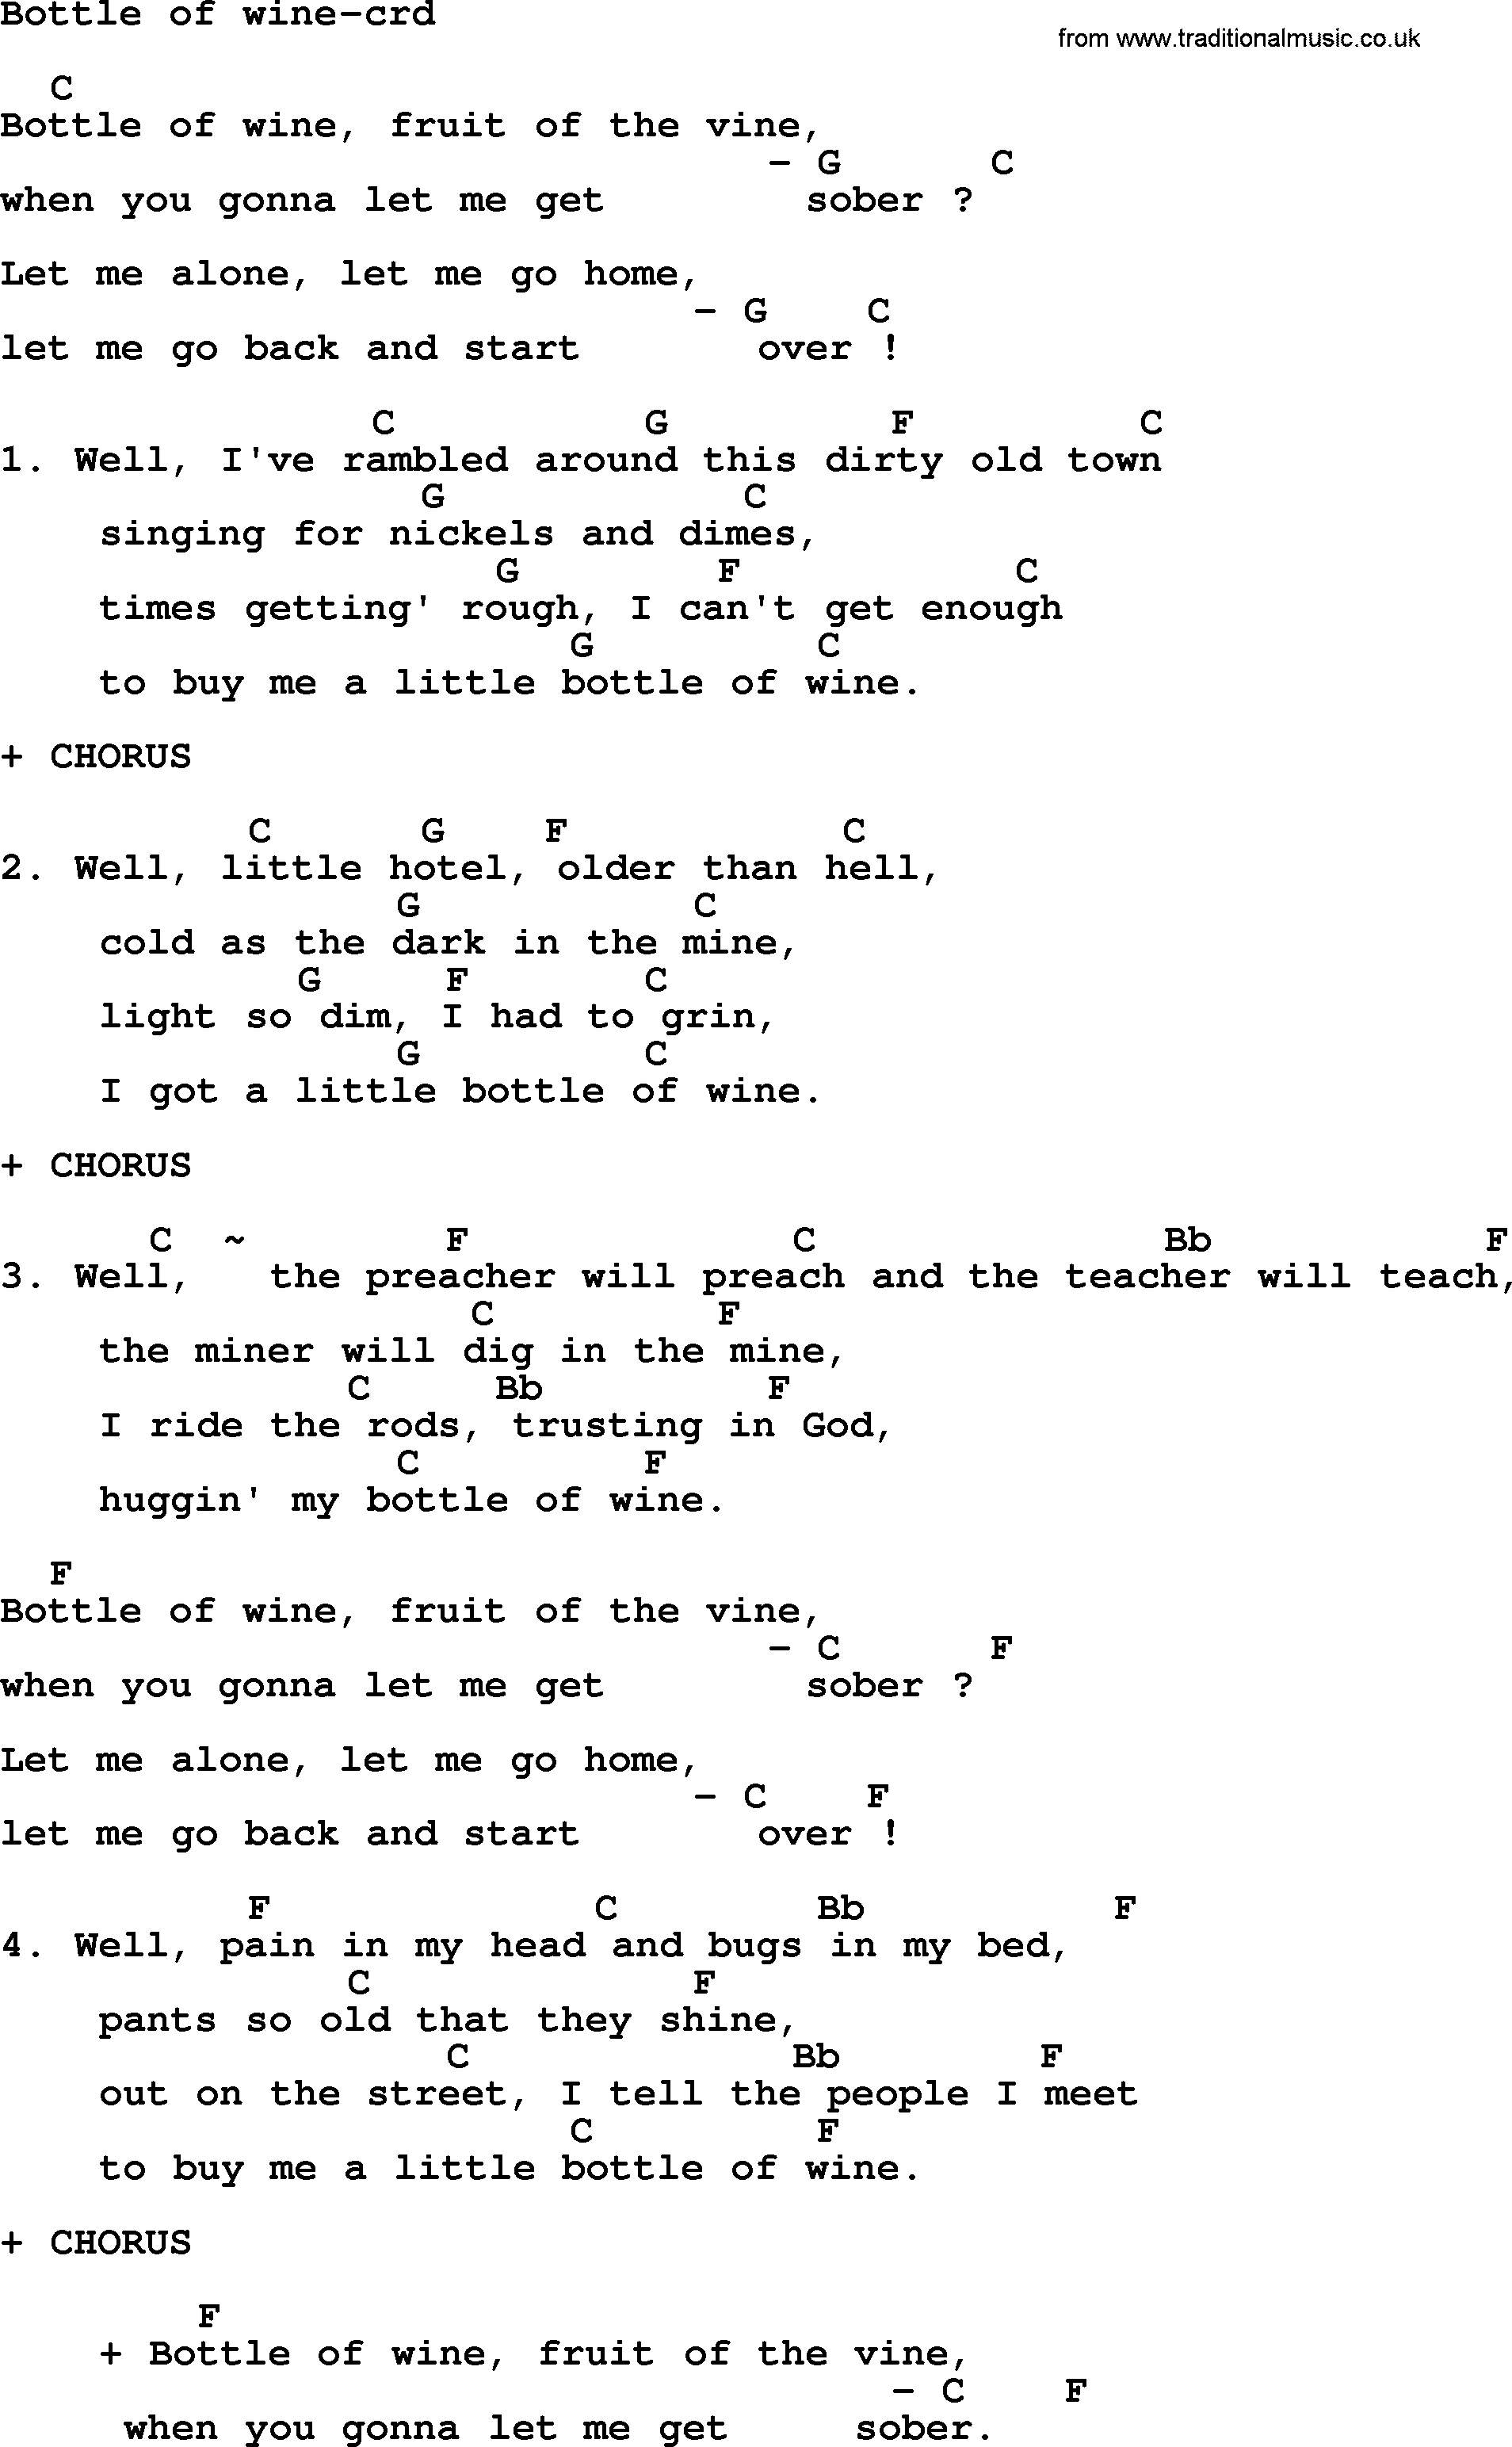 Kingston trio song bottle of wine lyrics and chords kingston trio song bottle of wine lyrics and chords hexwebz Image collections